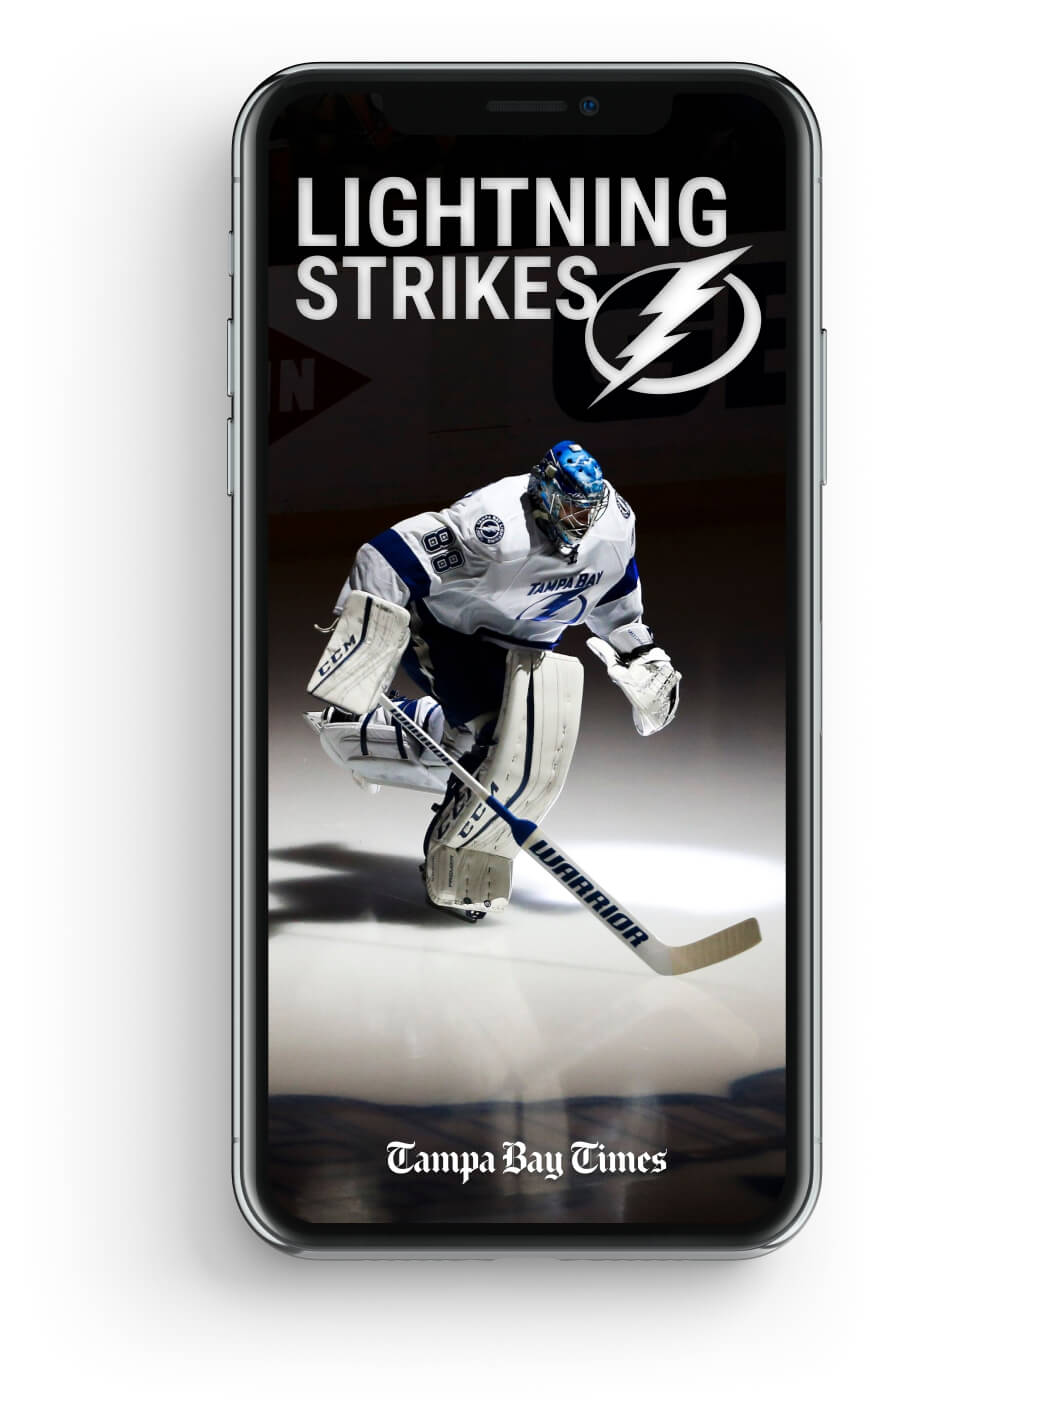 The Tampa Bay Times 'Lightning Strikes' newsletter